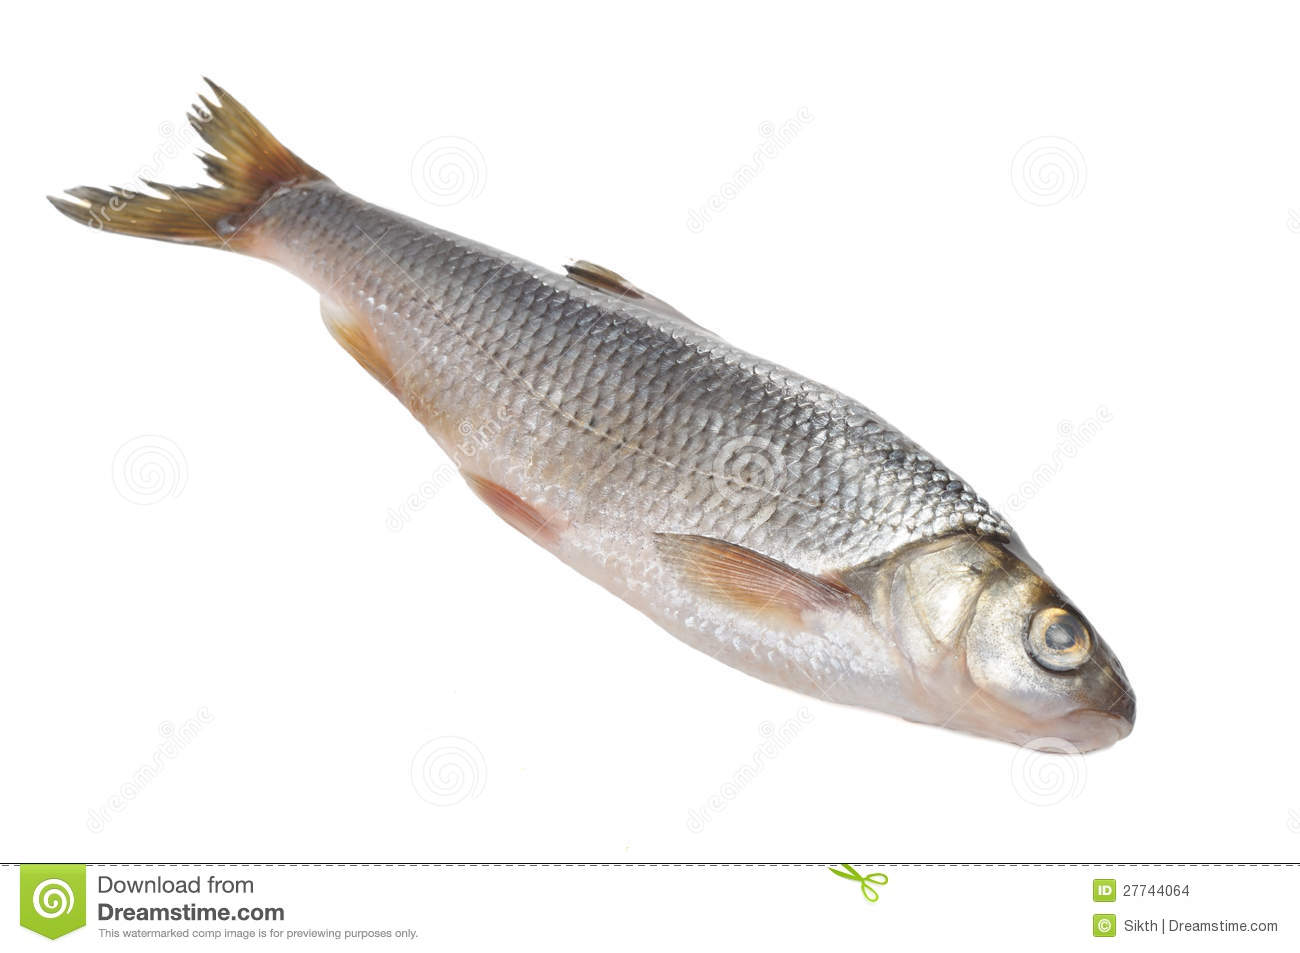 Fresh common dace fish isolated on a white background.